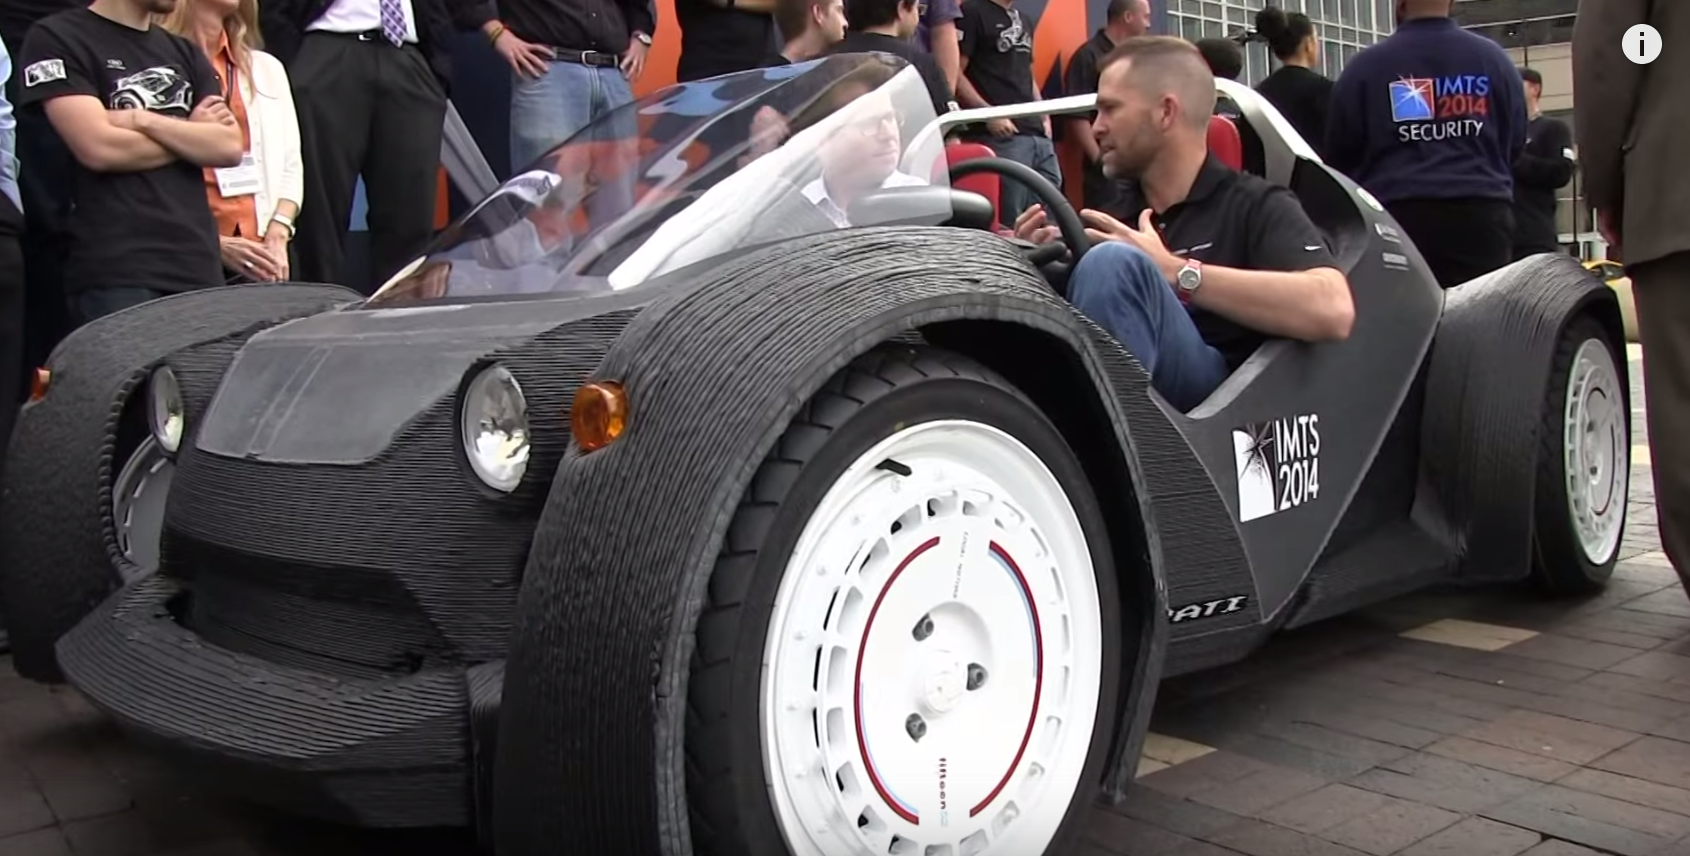 Strati The first 3D printed car. YES, we go for a ride! A new EV IMTS 2014